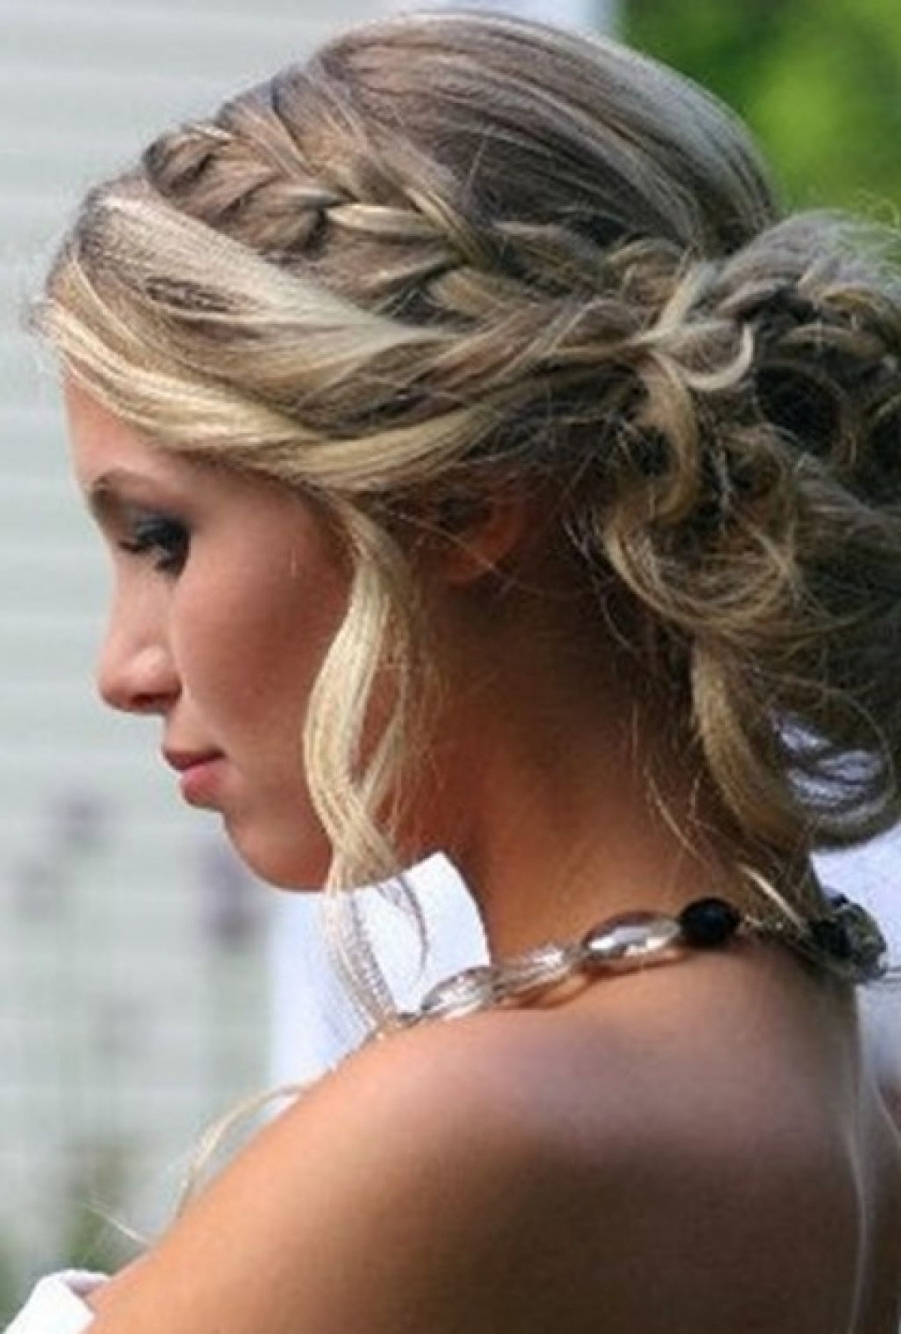 Fashionable Wedding Hairstyles For Medium Length Thick Hair Intended For Photo: Prom Hairstyles Tumblr Thick Shoulder Length Hair Wedding (View 1 of 15)